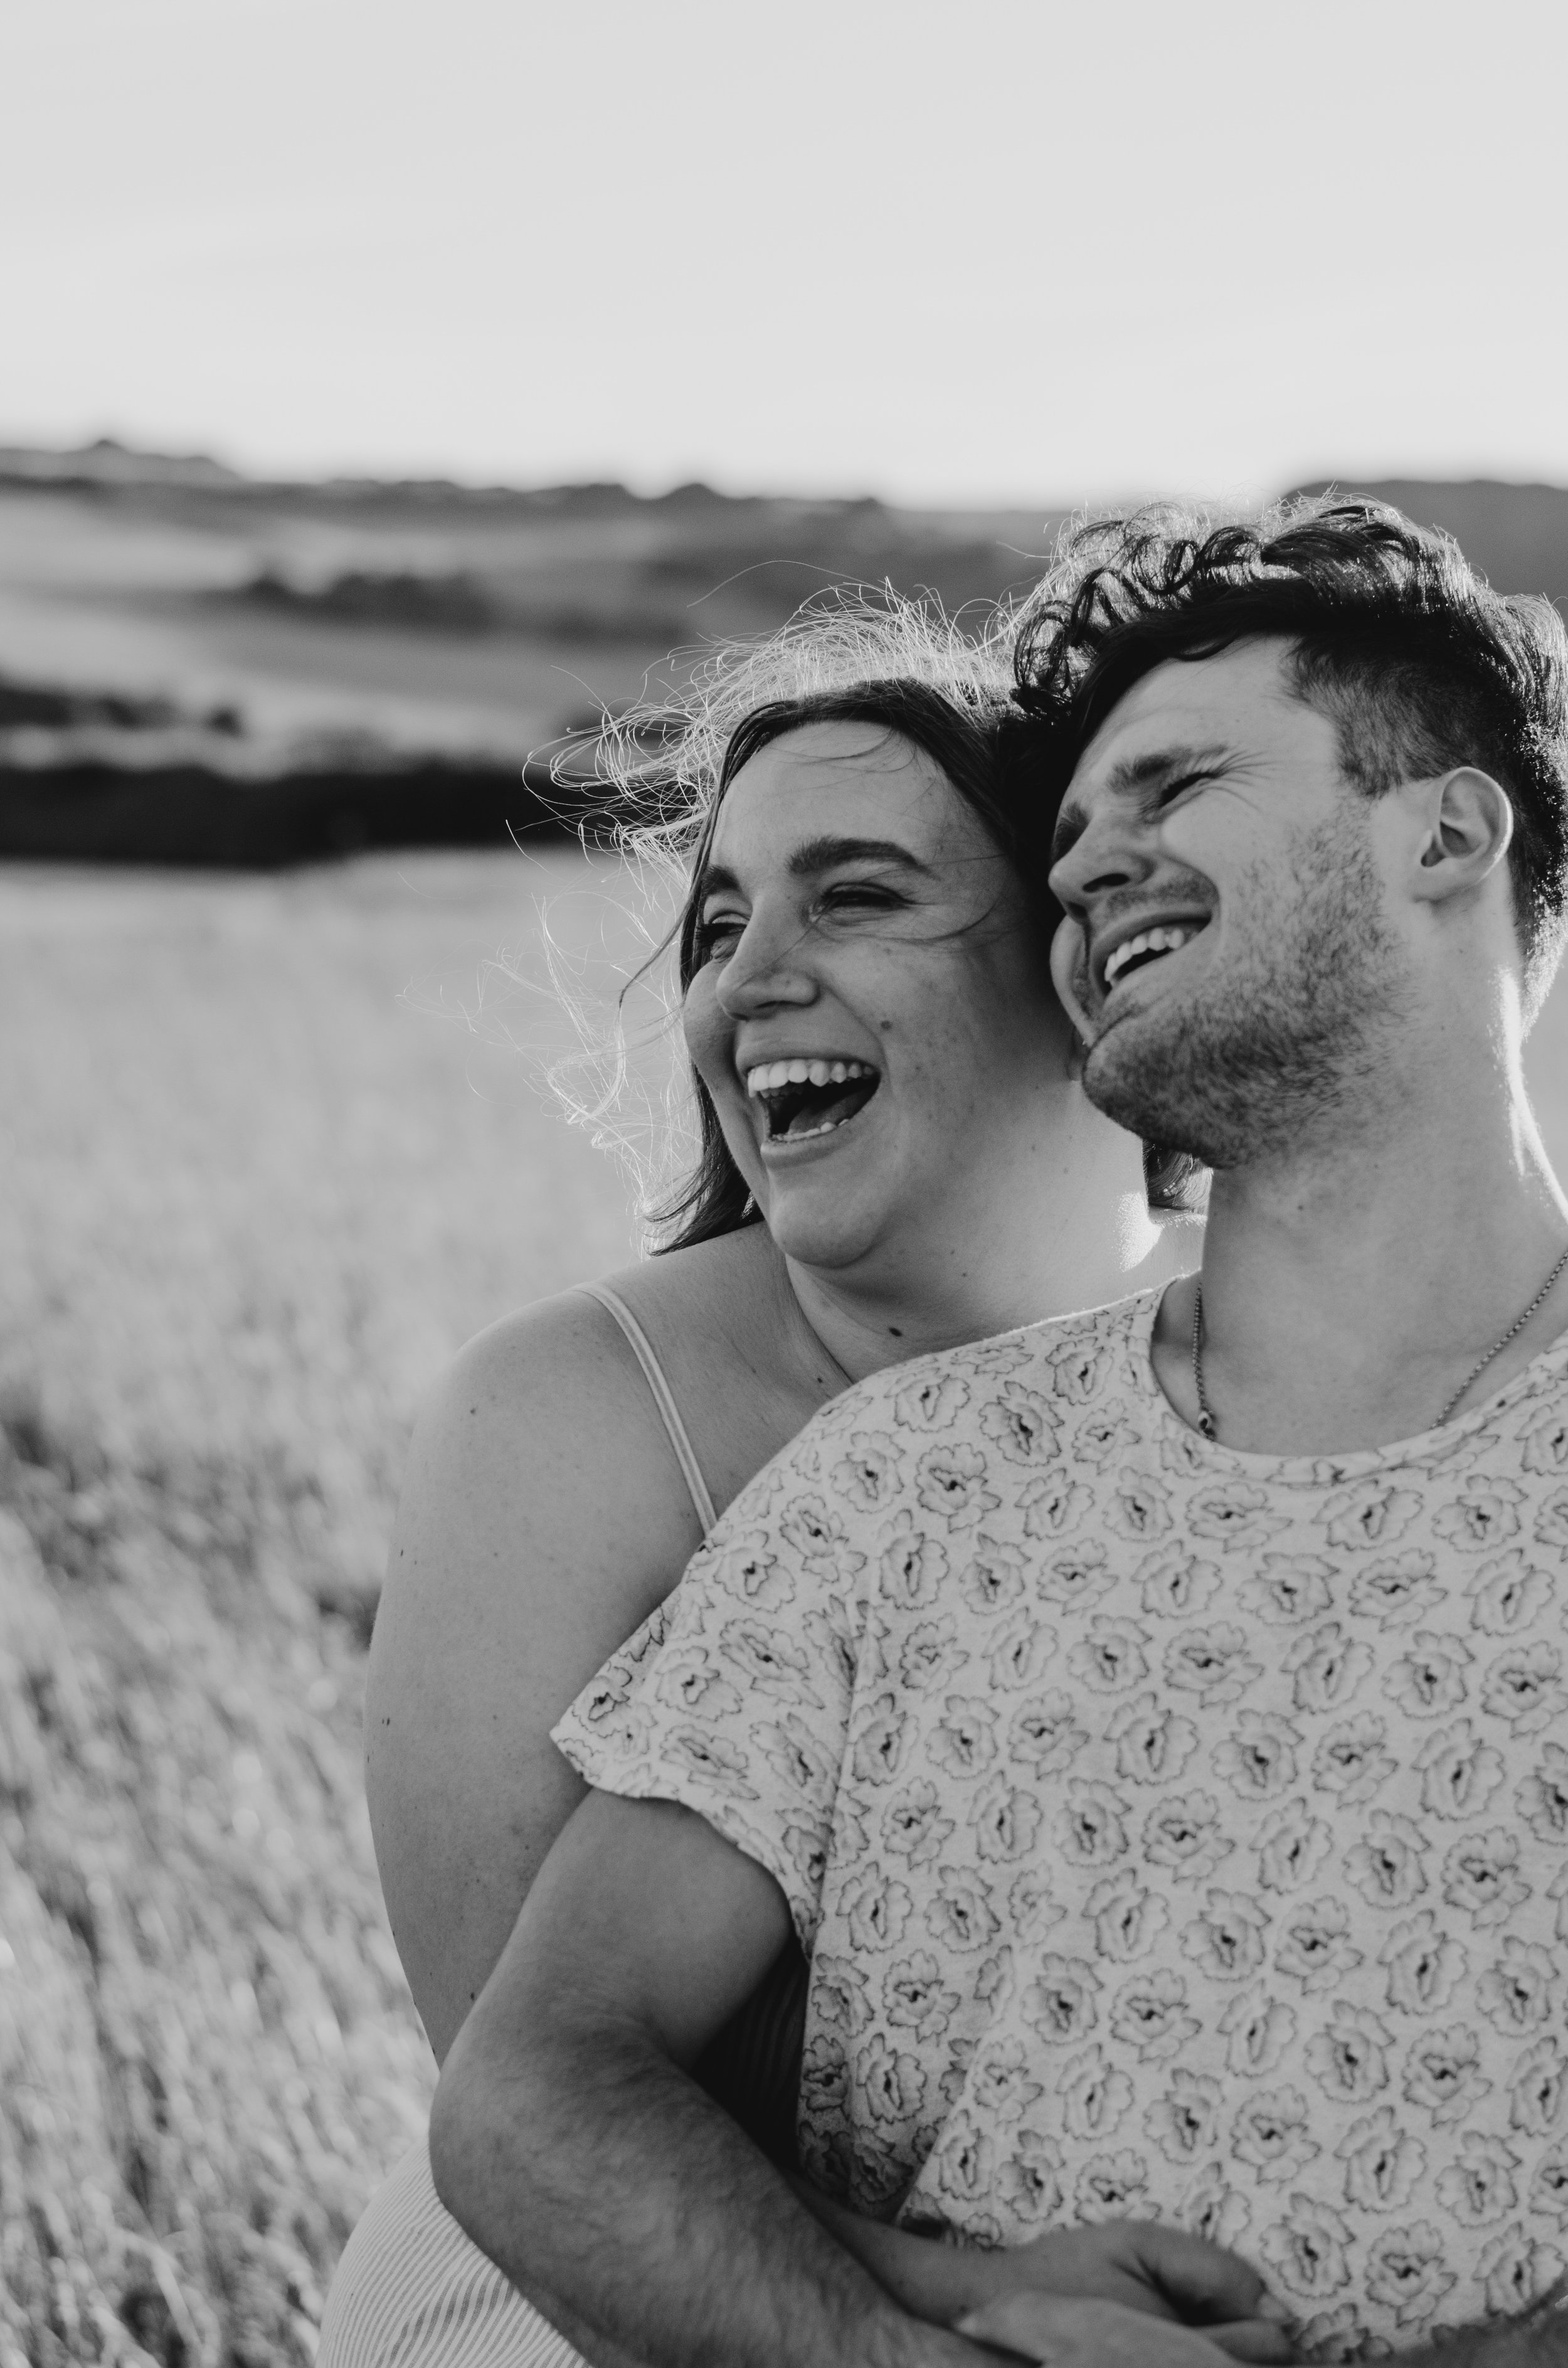 Rebecca & Dougie - Cuckmere Haven - Couple Session - Aiste Saulyte Photography-11.jpg